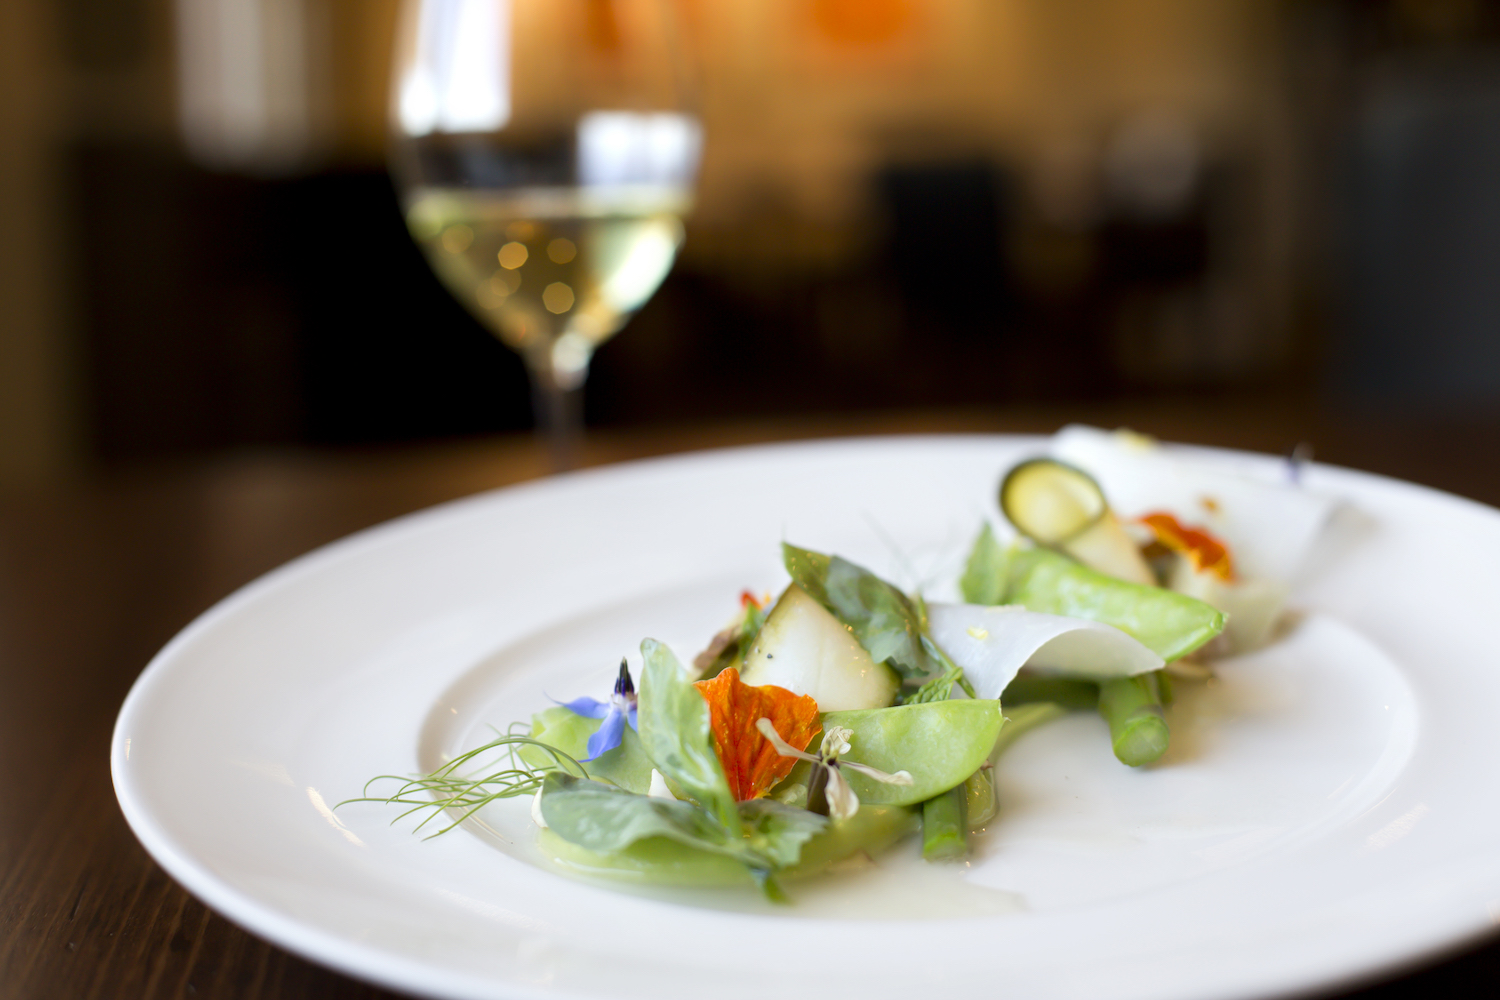 Discover perfectly paired wine and food at Appellation restaurant at The Louise